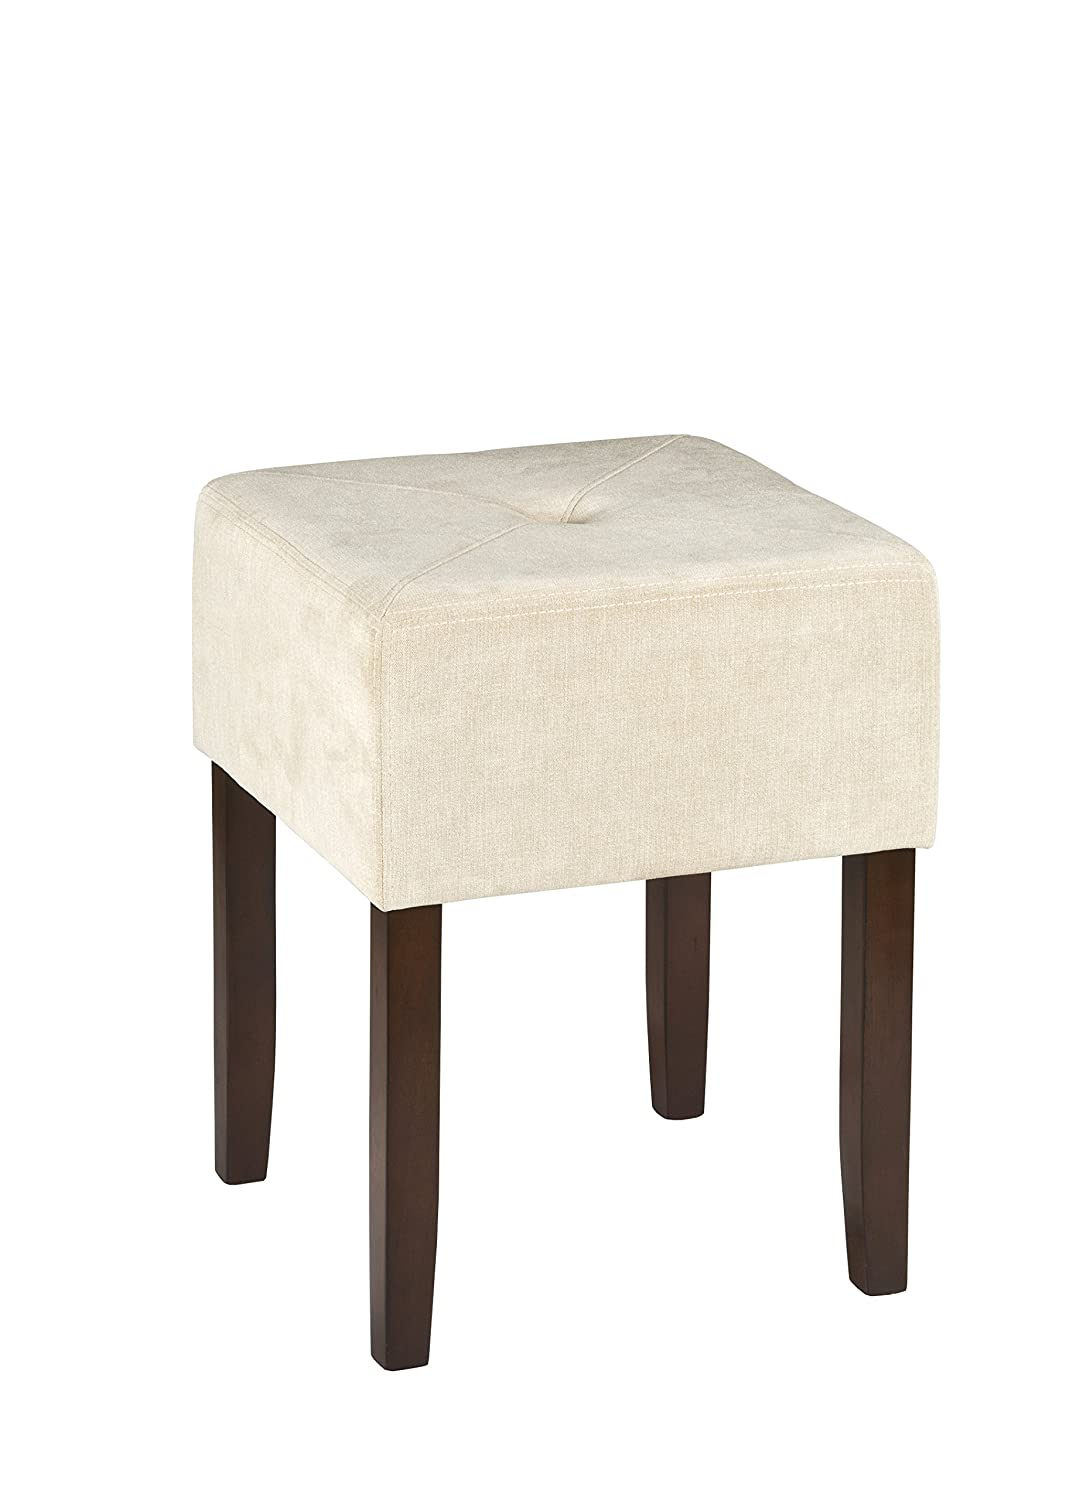 Hillsdale Bellamy Backless Vanity Stool, Beige Hillsdale Furniture 55240